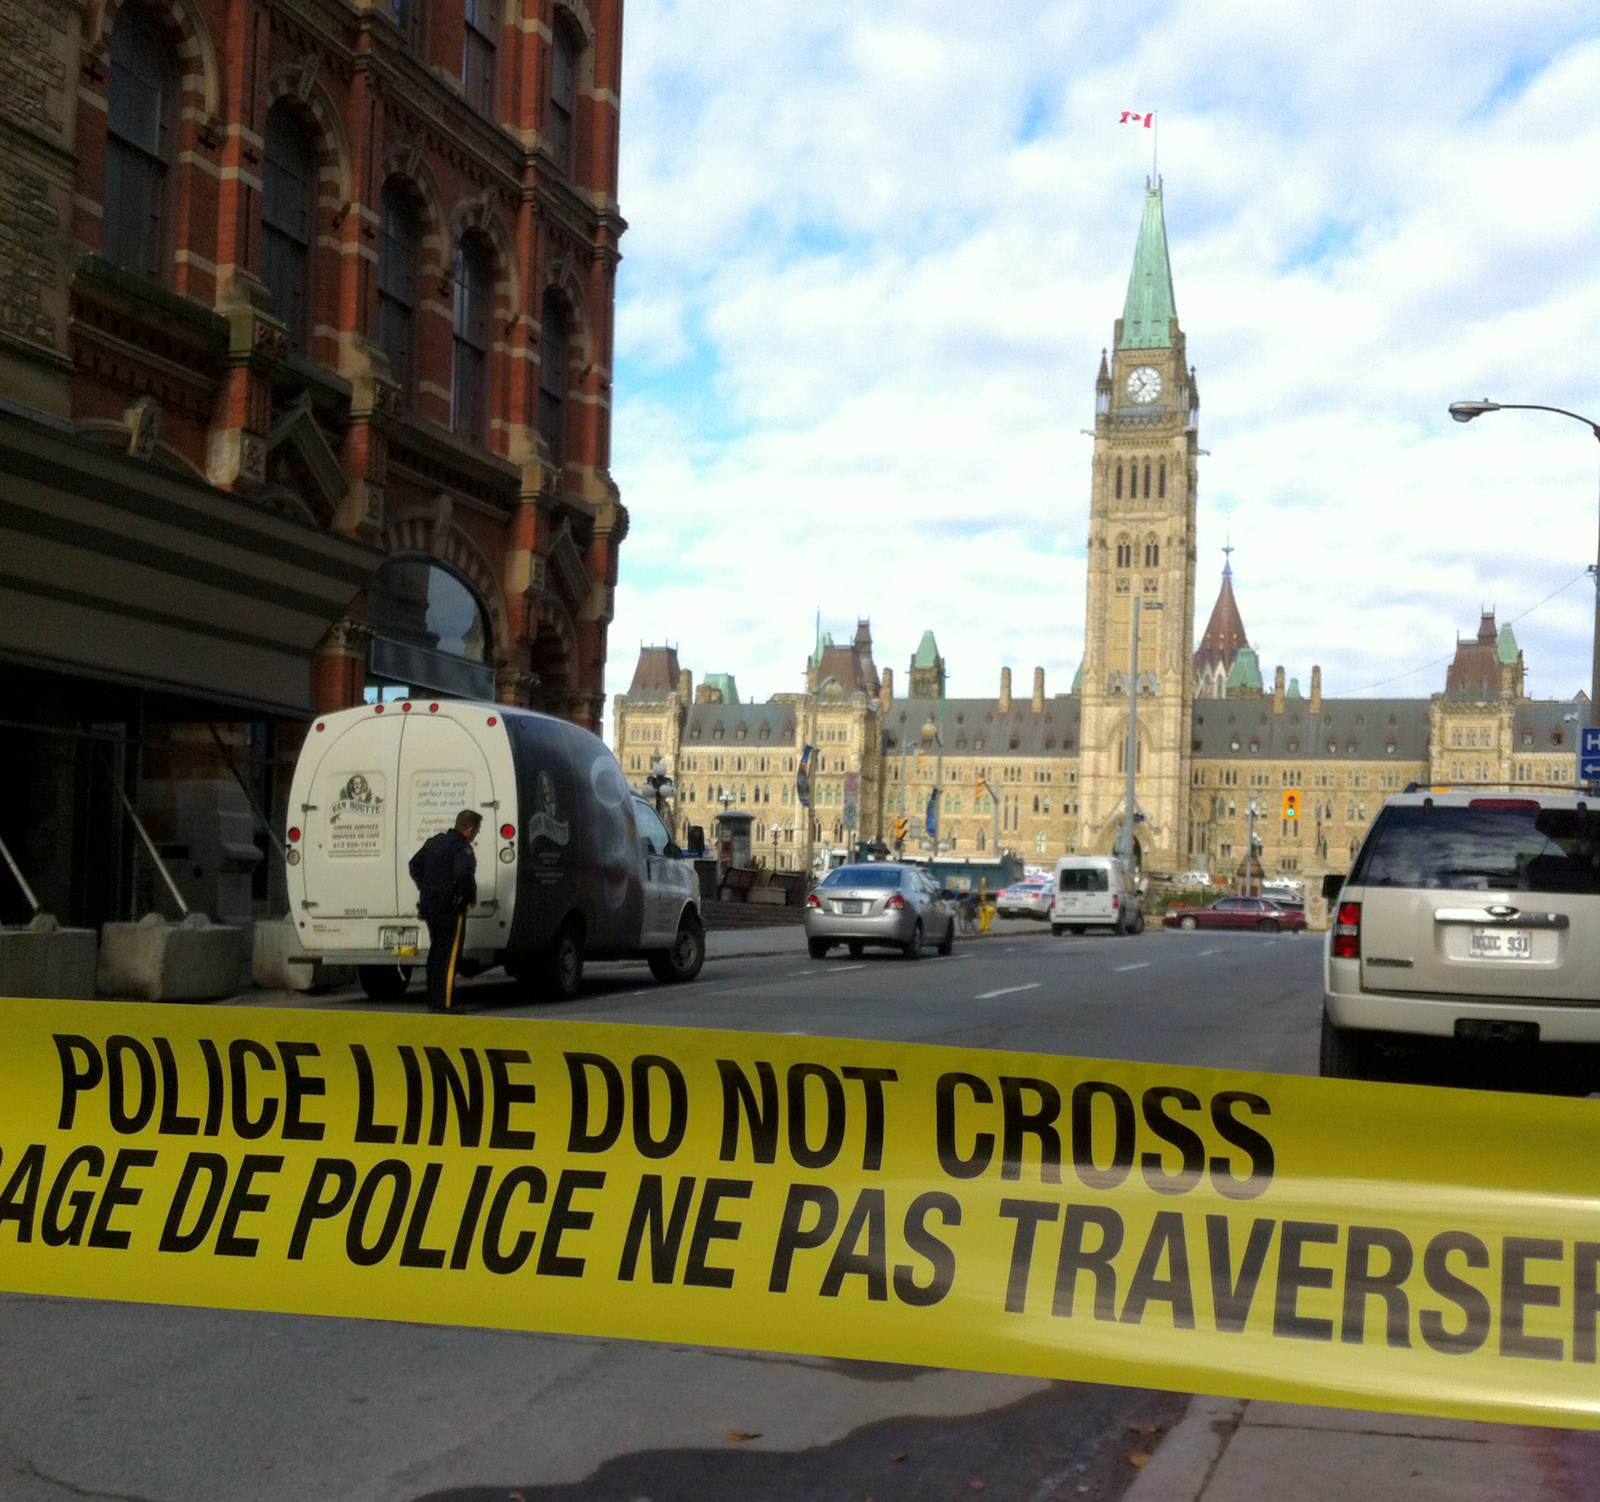 Police block off access to Parliament Hill after shots were fired at Canada's Parliament in Ottawa on Oct. 22. Credit: Courtesy of TNS